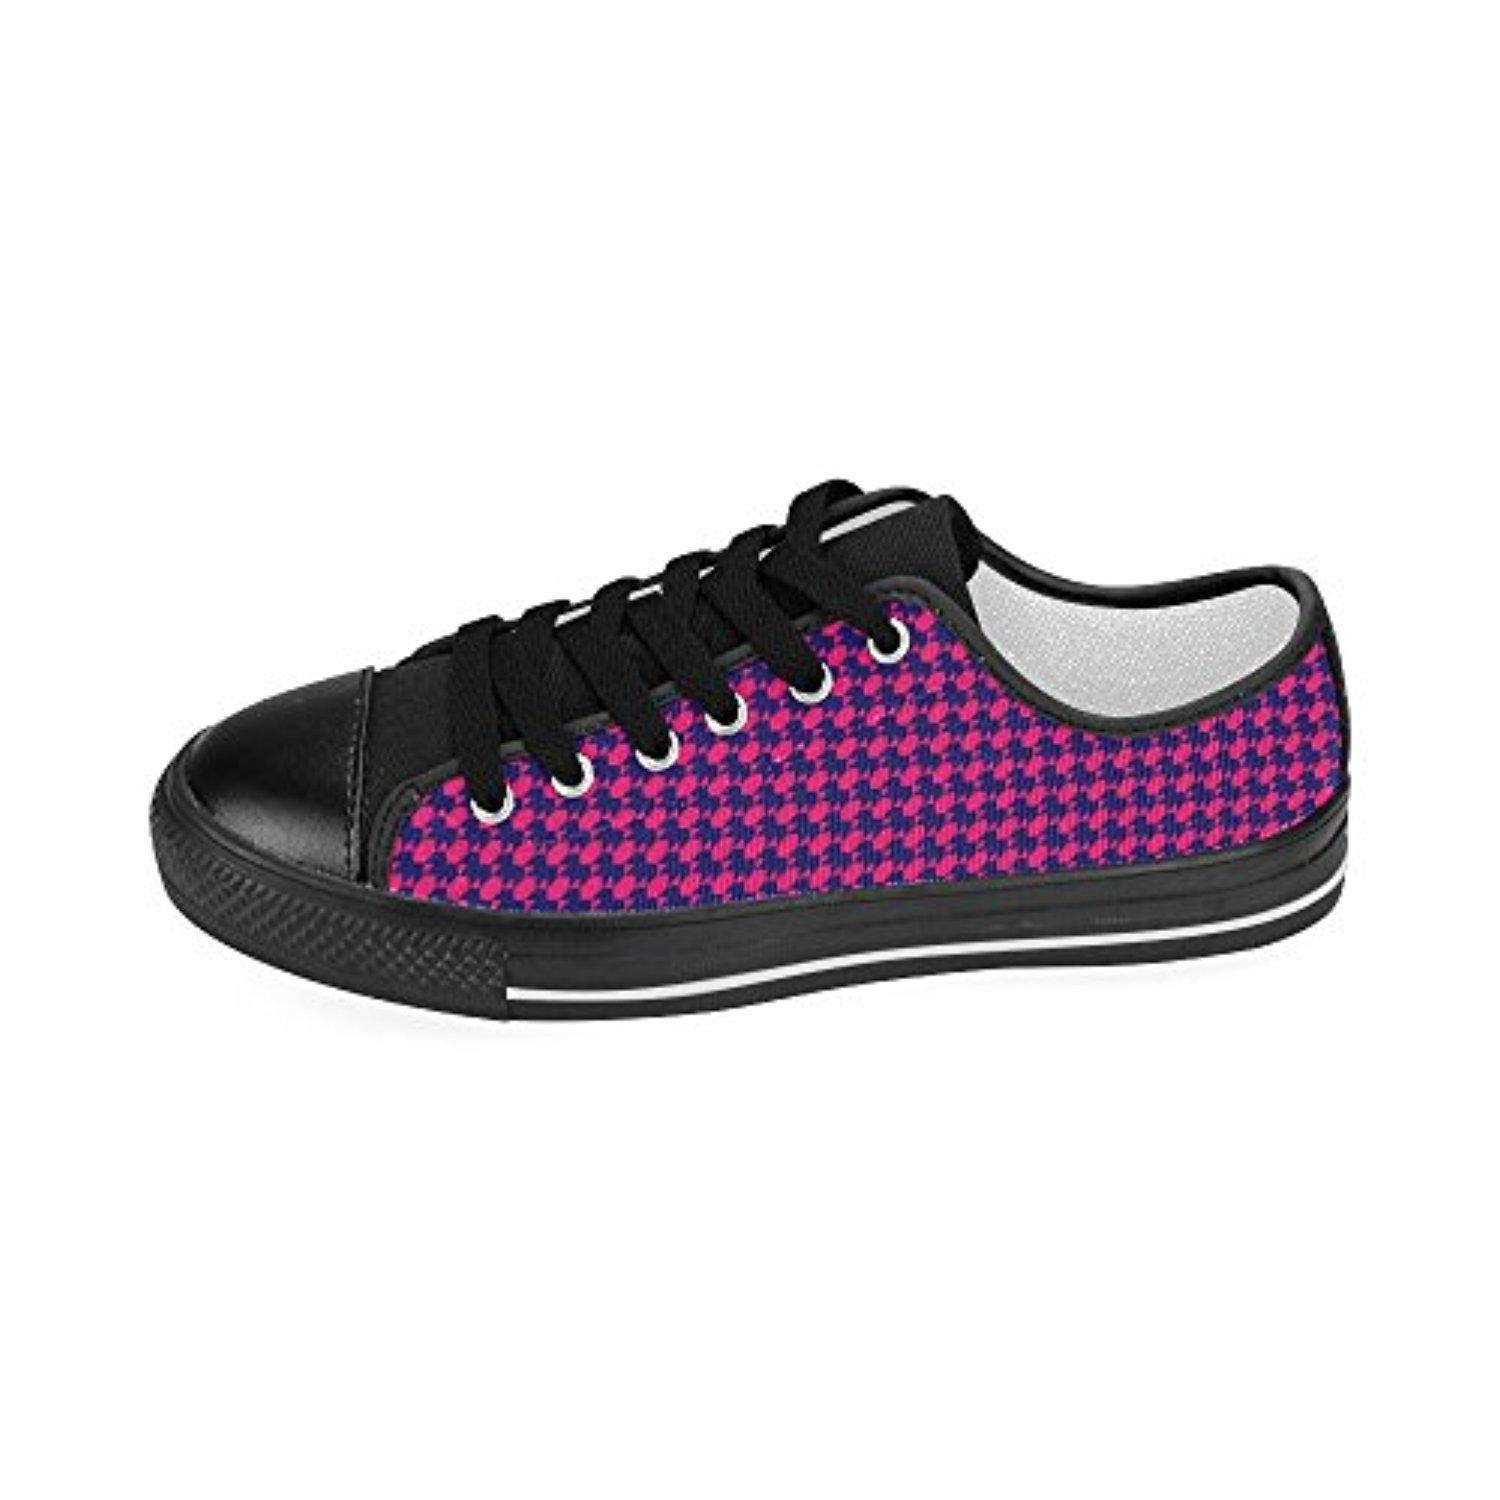 H-MOE Art Houndstooth Men's Canvas Shoes Low-top Lace-up Breathable Sneakers,Black